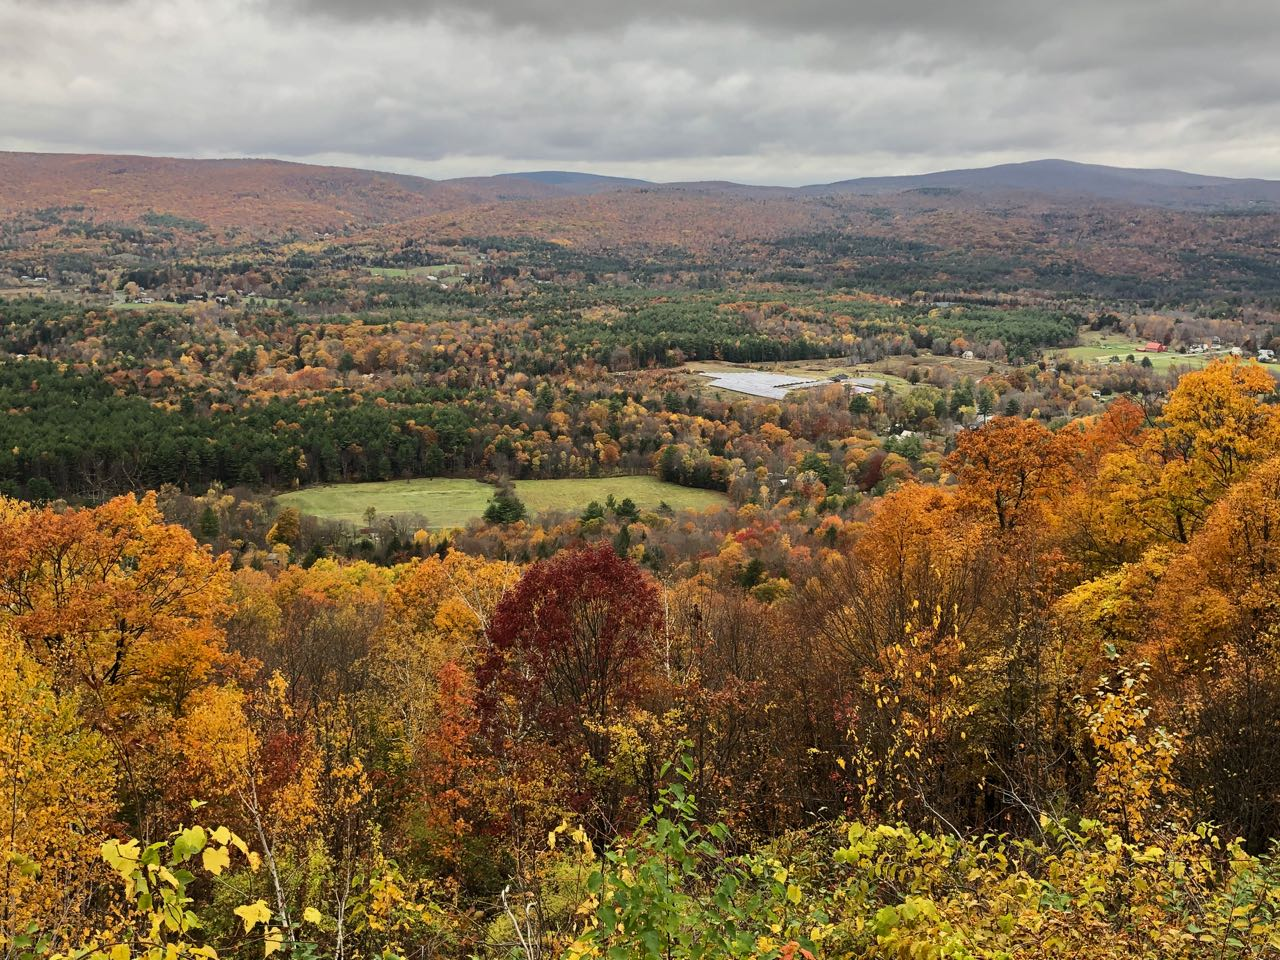 View from the hairpin turn on the Mohawk Trail in the Hoosac Range